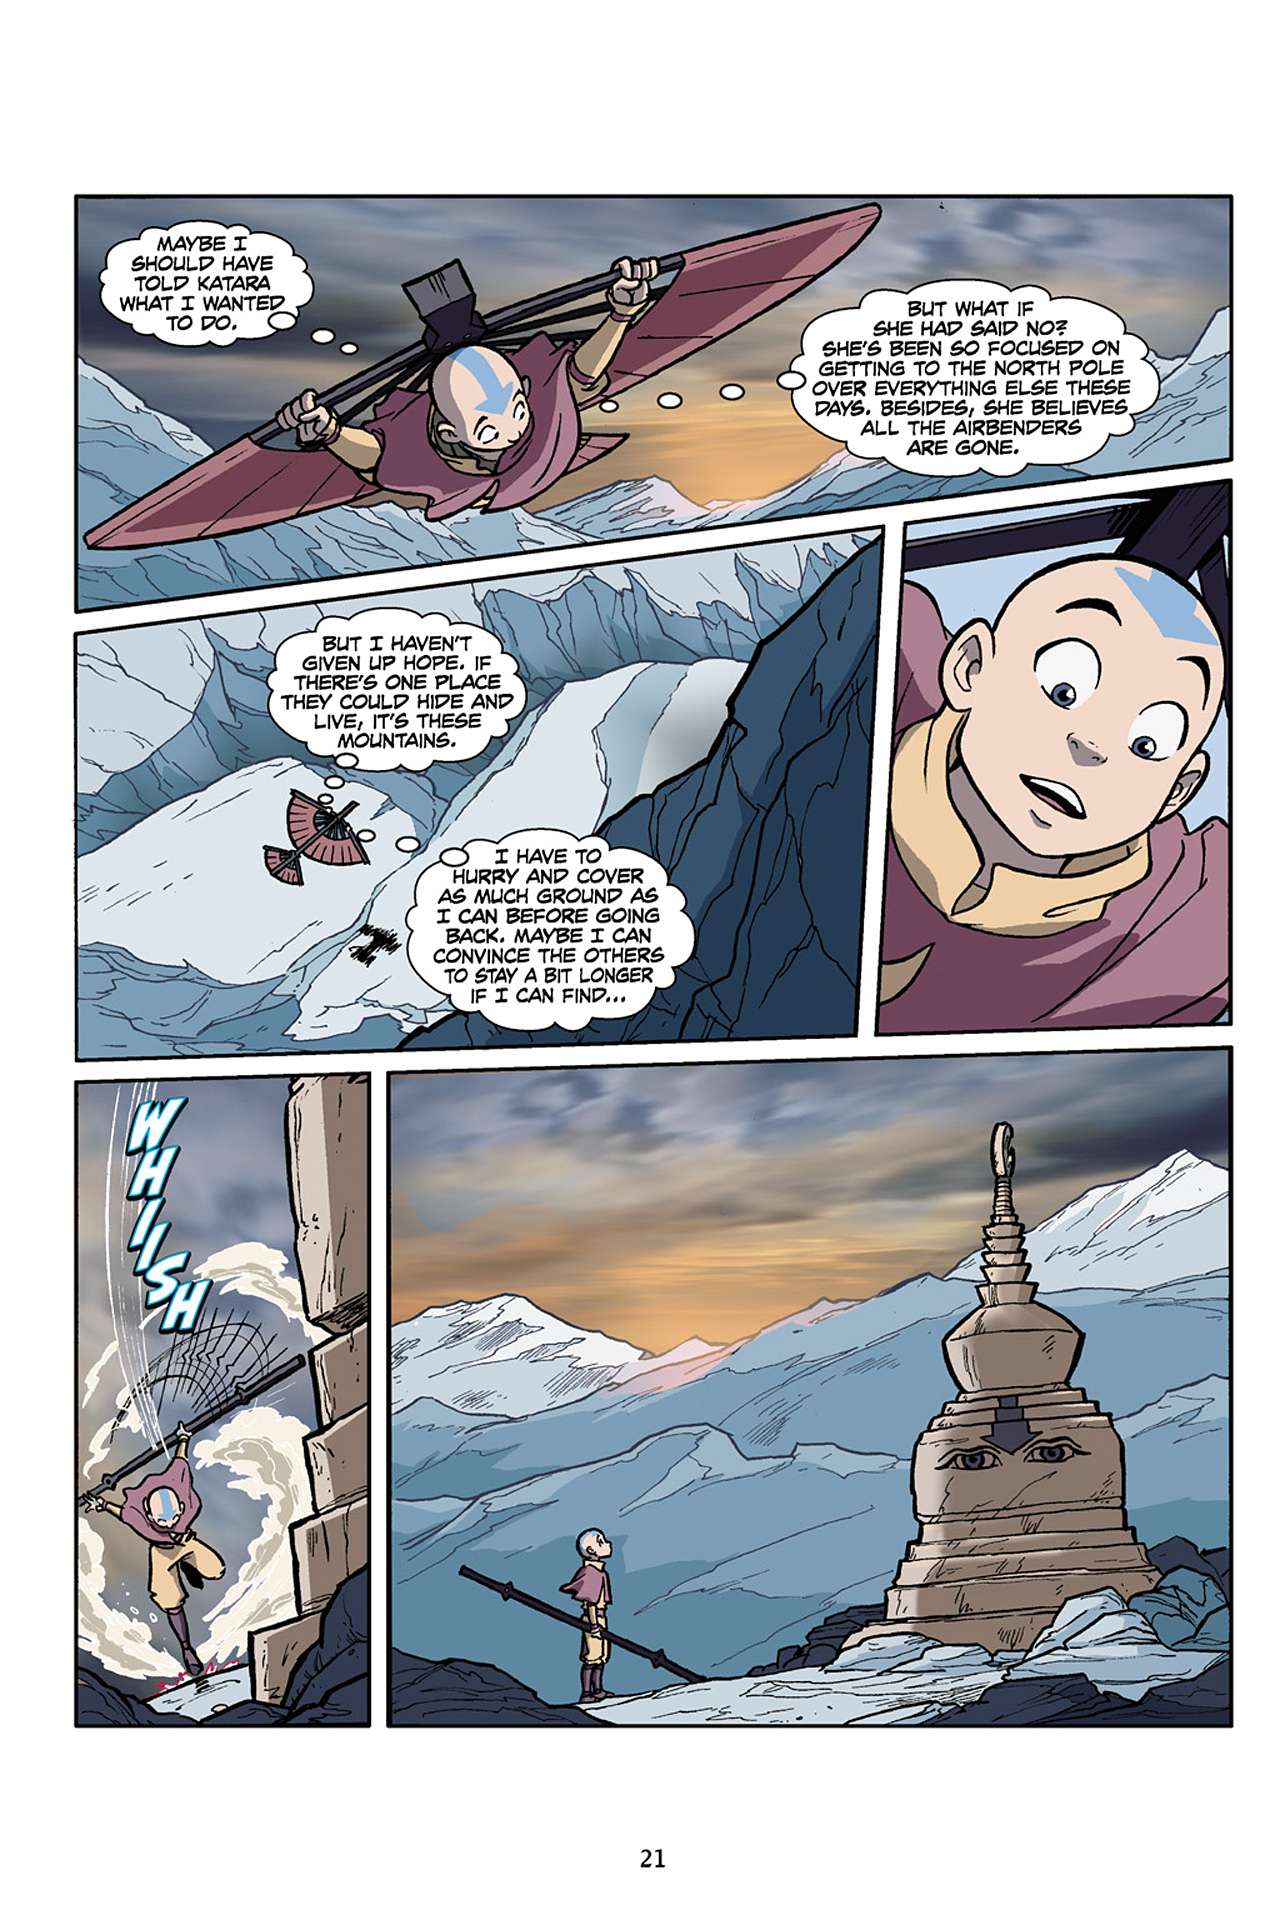 Nickelodeon Avatar: The Last Airbender - The Lost Adventures chap full pic 22